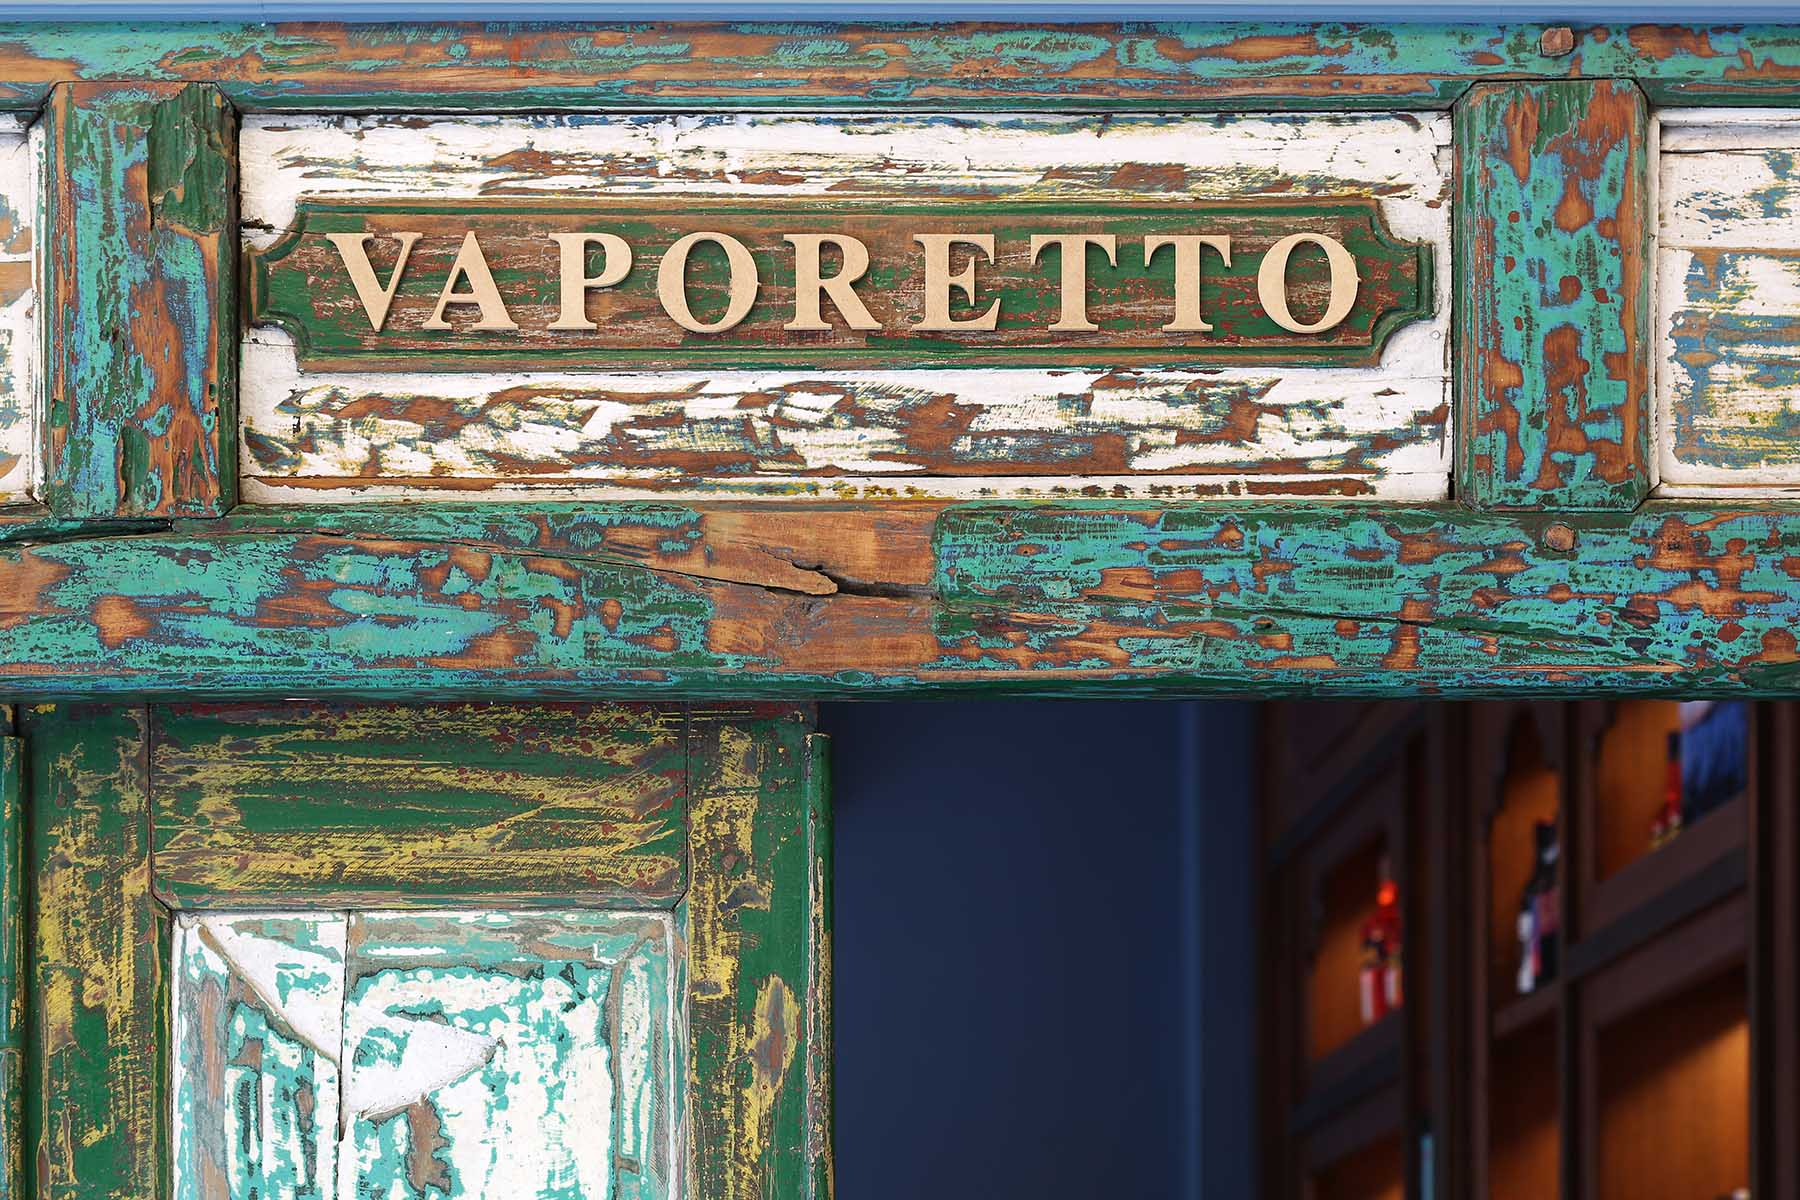 Vaporetto - interior design by Studio Y.